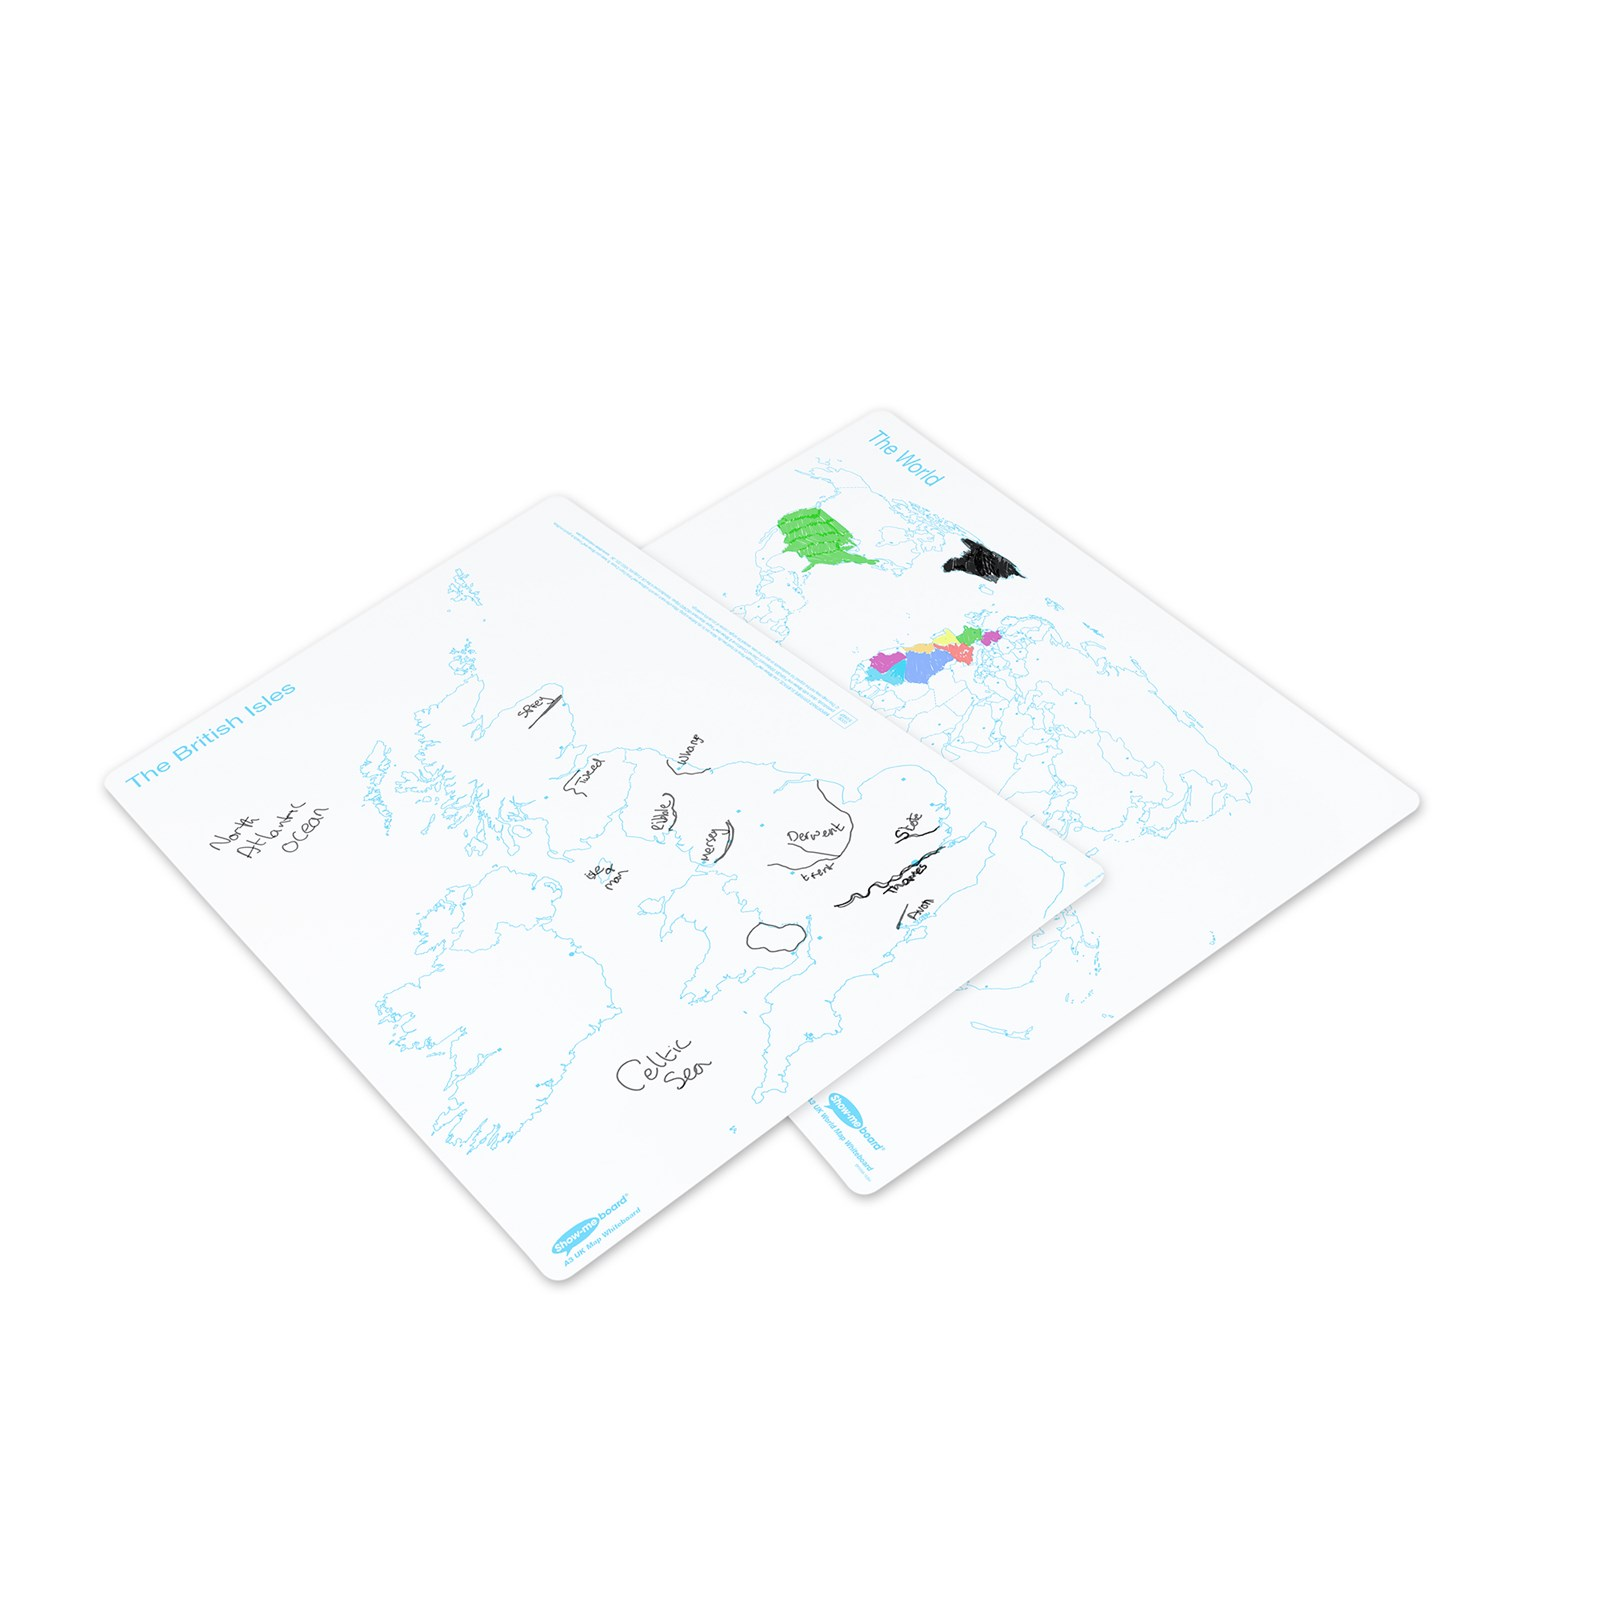 World and UK A3 Whiteboards